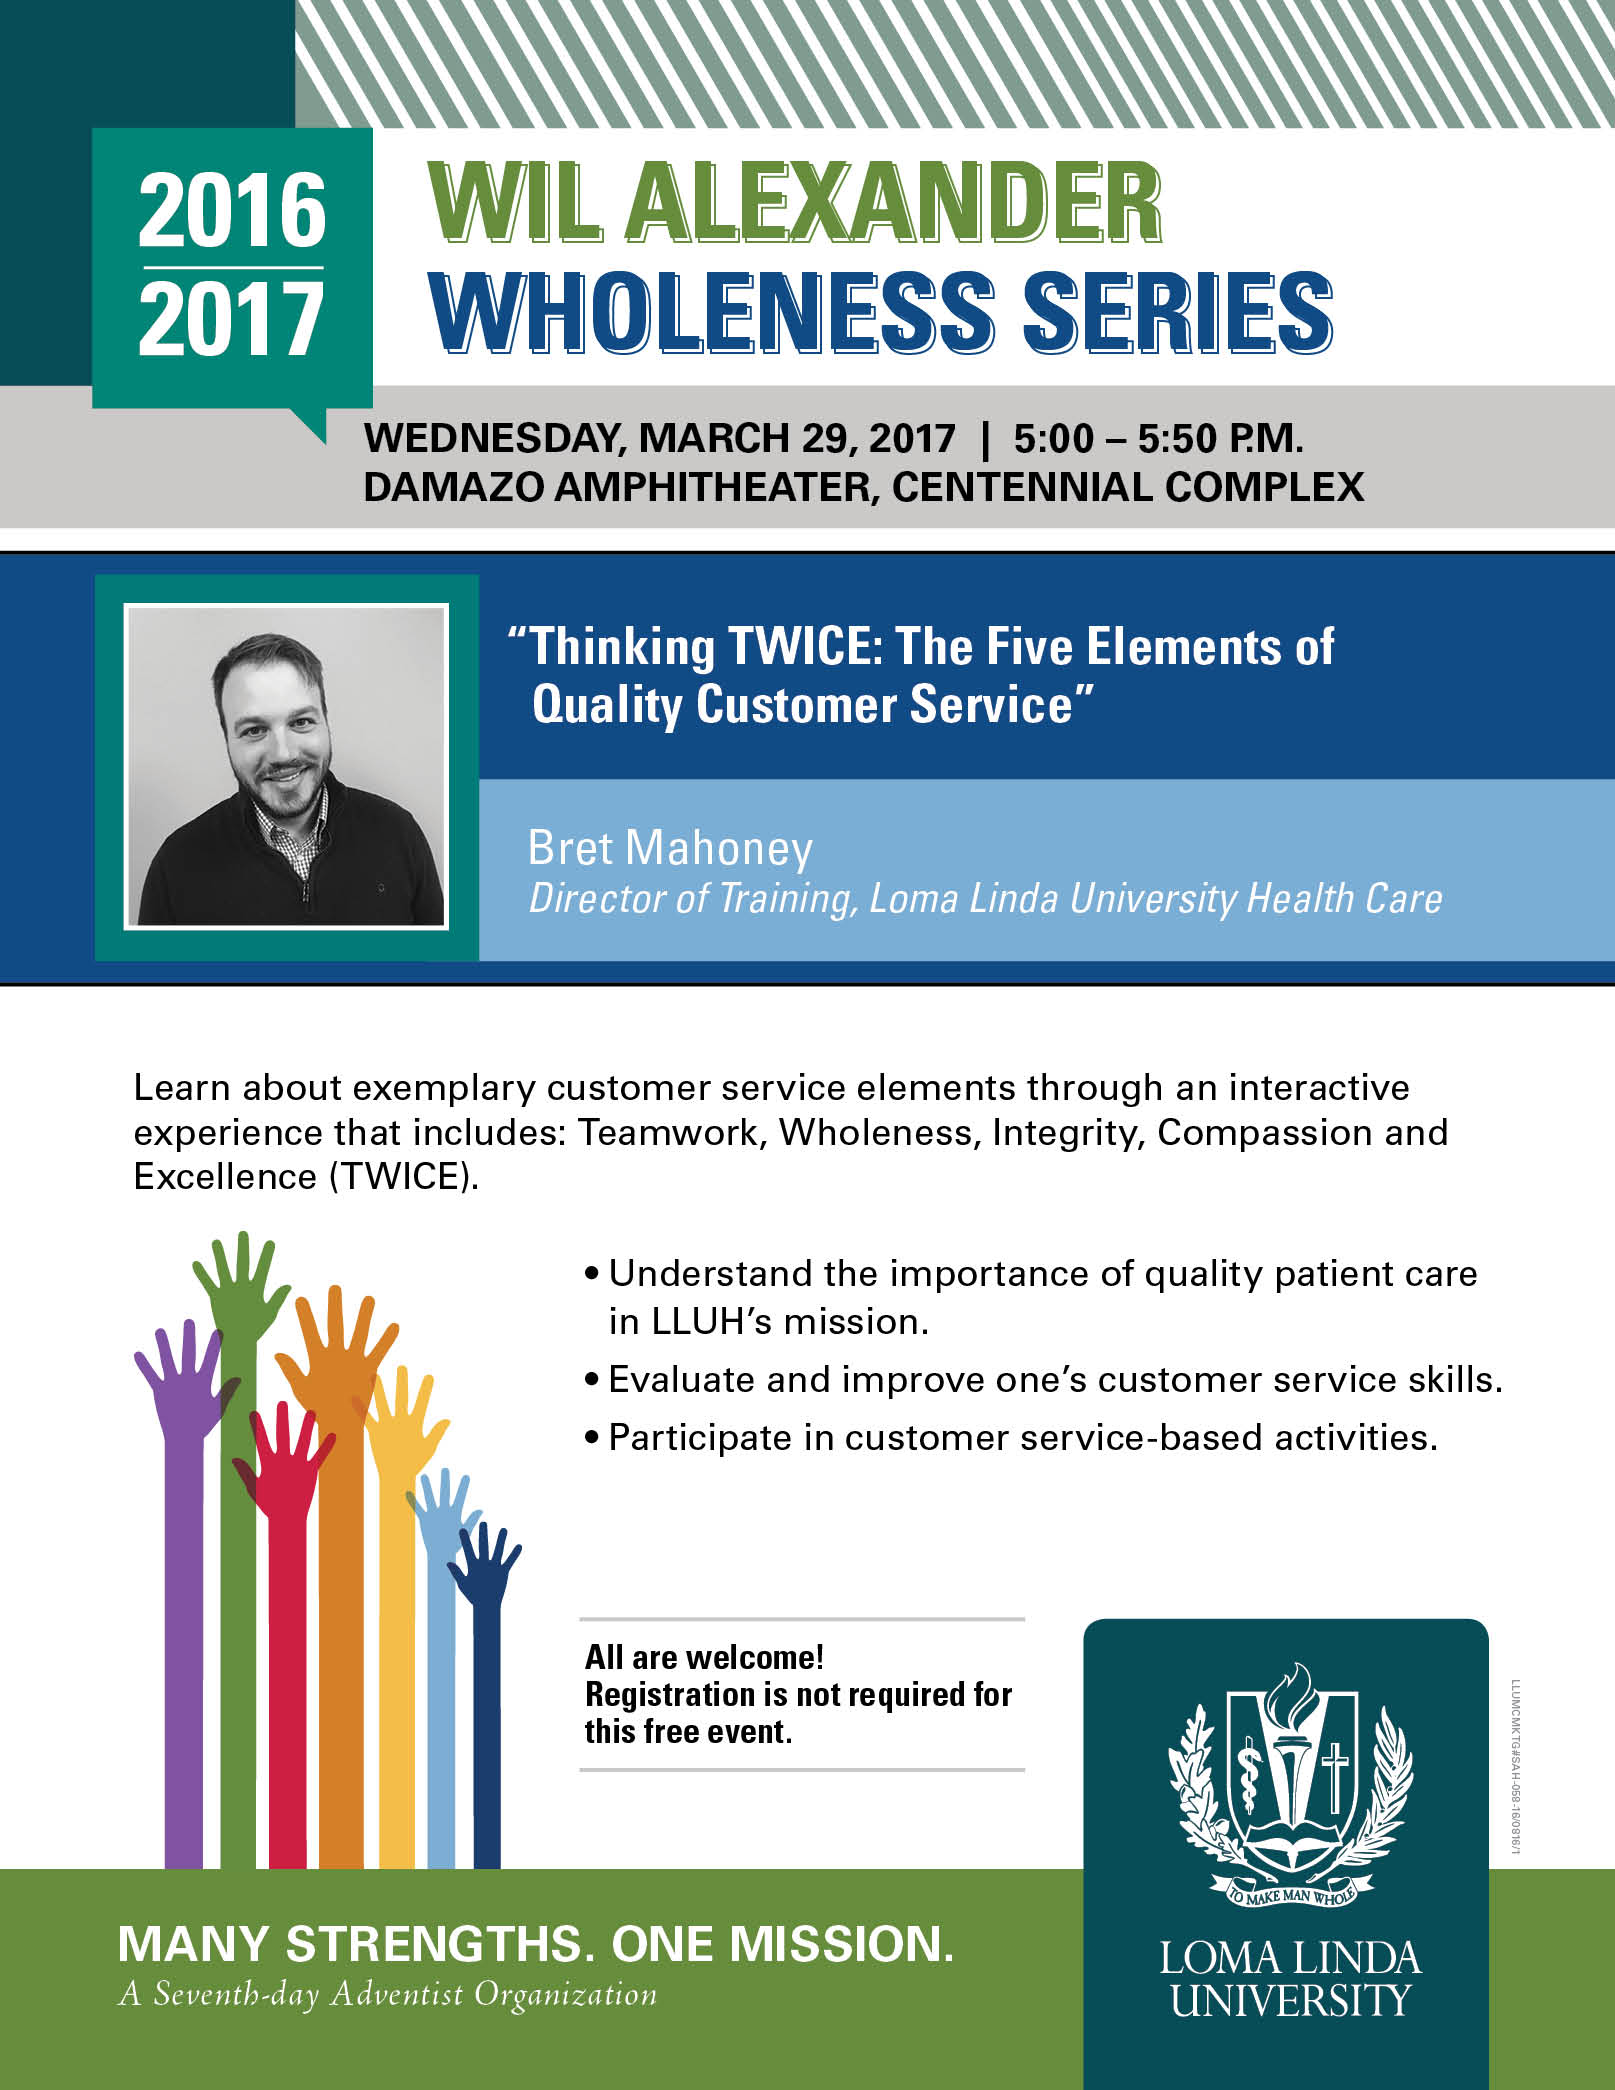 wil alexander wholeness series loma linda university bret mahoney thinking twice the five elements of quality customer service